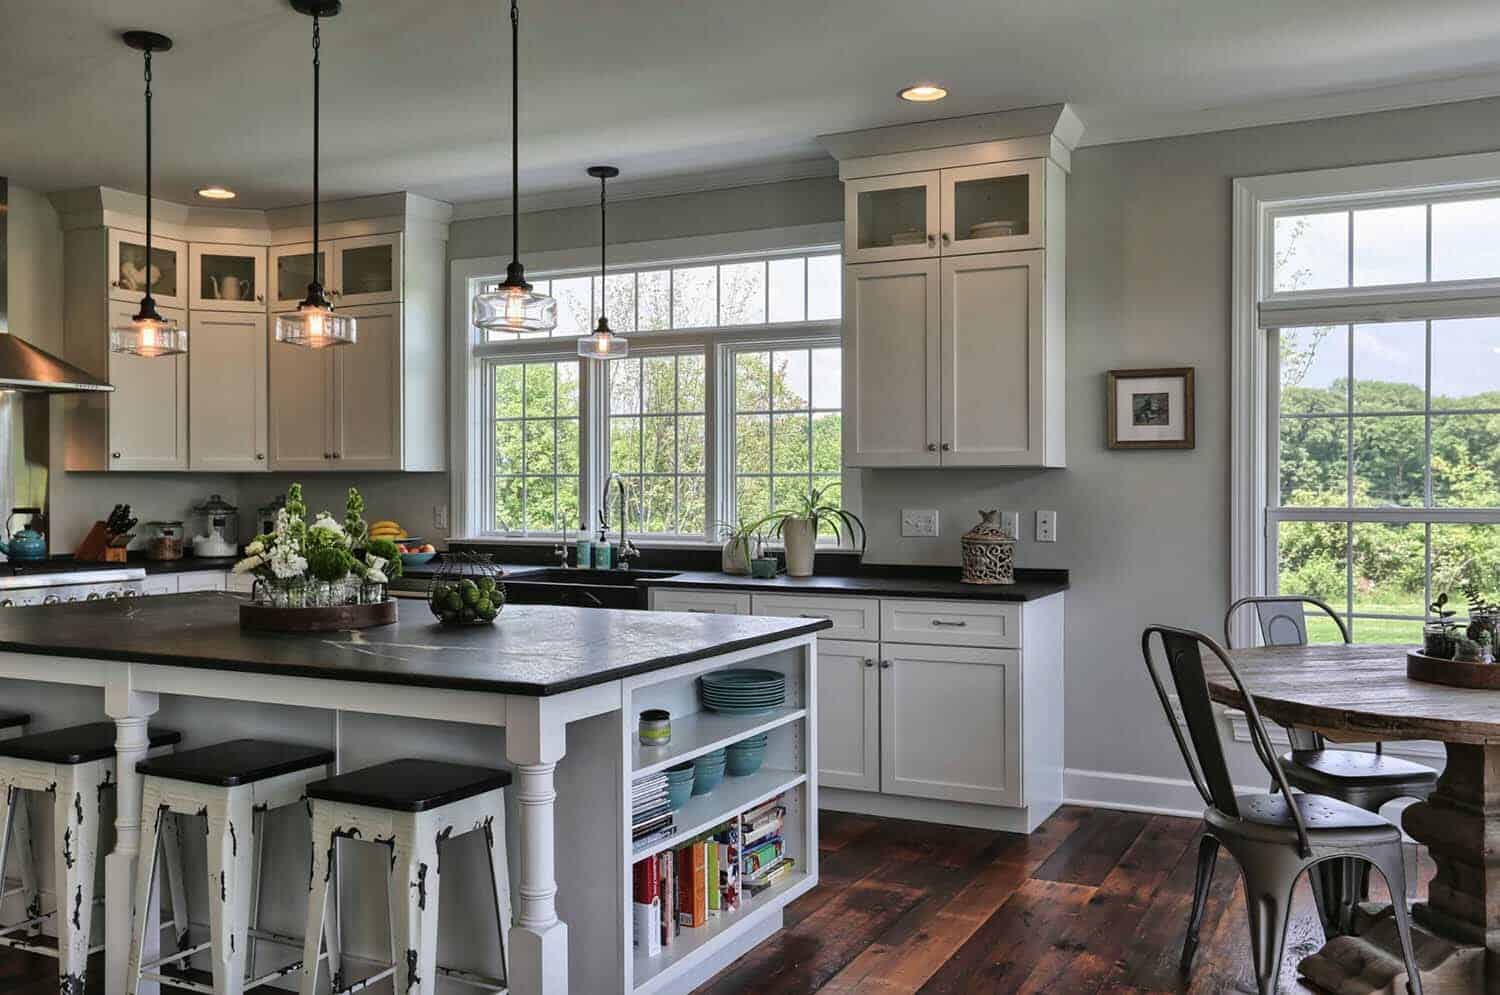 35+ Amazingly creative and stylish farmhouse kitchen ideas on blonde maple kitchen cabinets, gray kitchen with oak cabinets, kitchens with blond wood floors, cherry wood kitchen countertops with white cabinets, kitchens black cabinets,